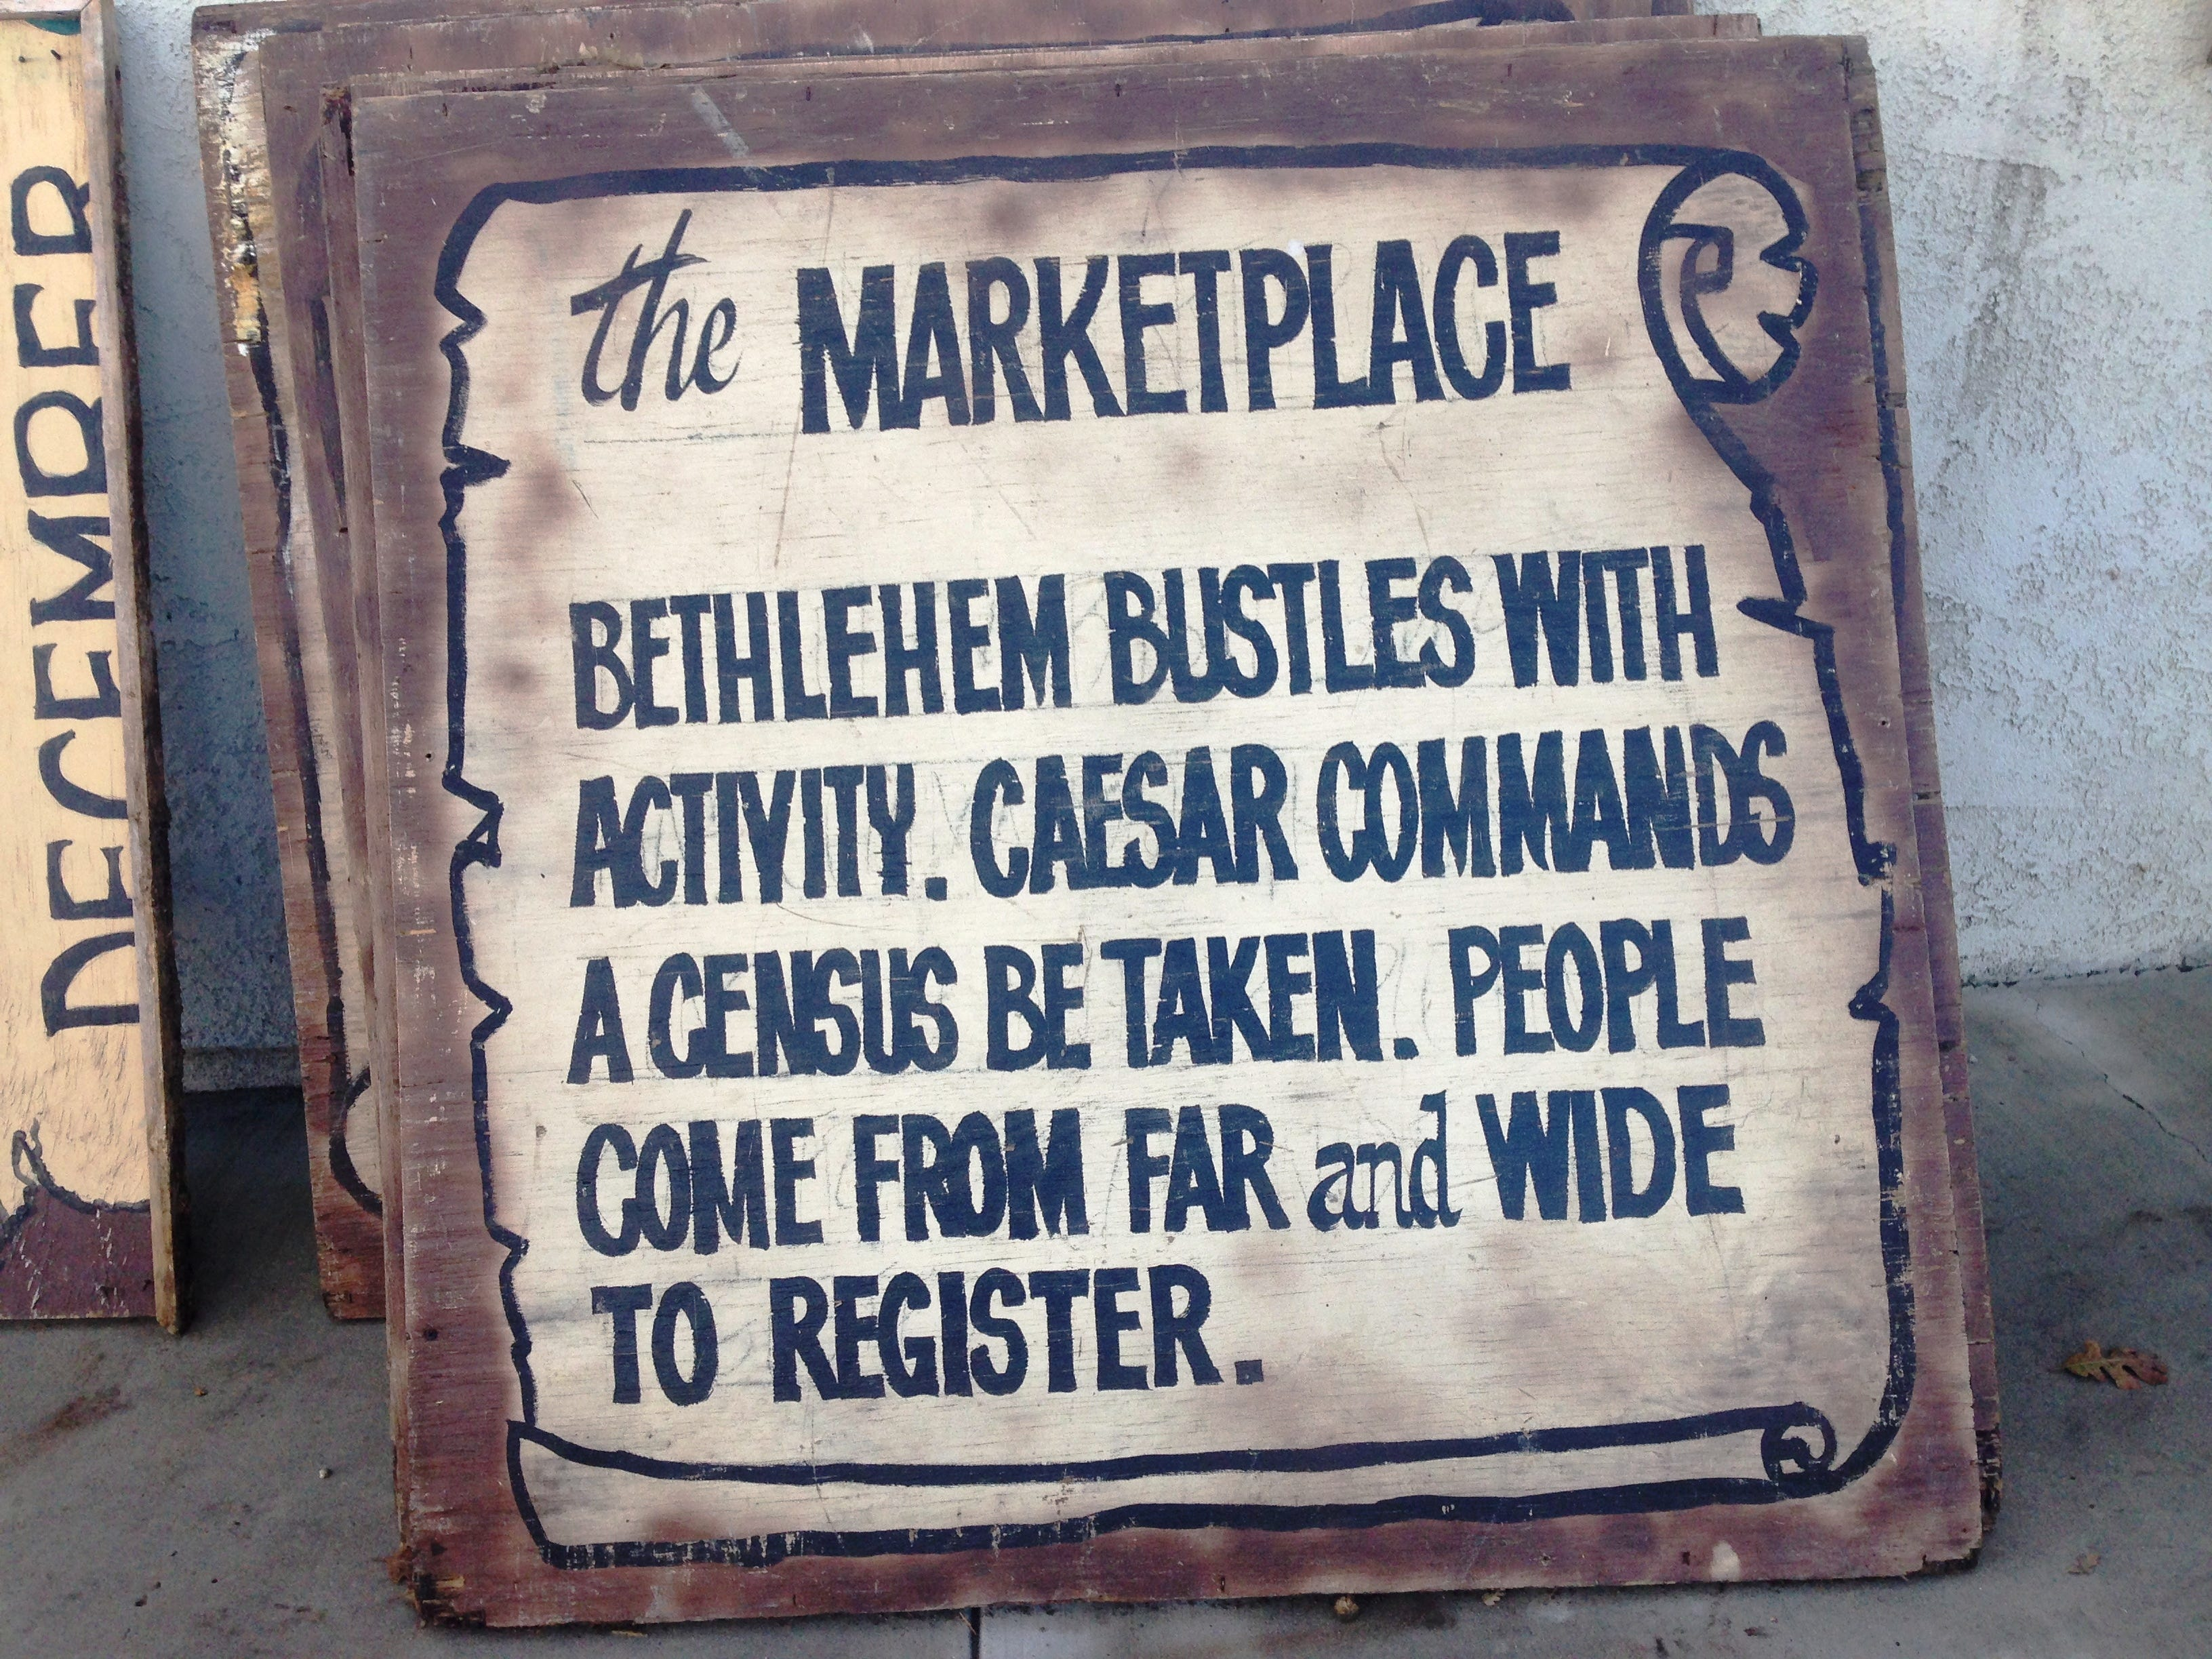 The Marketplace sign is among many that will be on display during the Bethlehem Experience, a drive-through Nativity scene at Westminster Presbyterian Church in Westlake Village. This free event will take place from 5-9 p.m. Friday and Saturday.